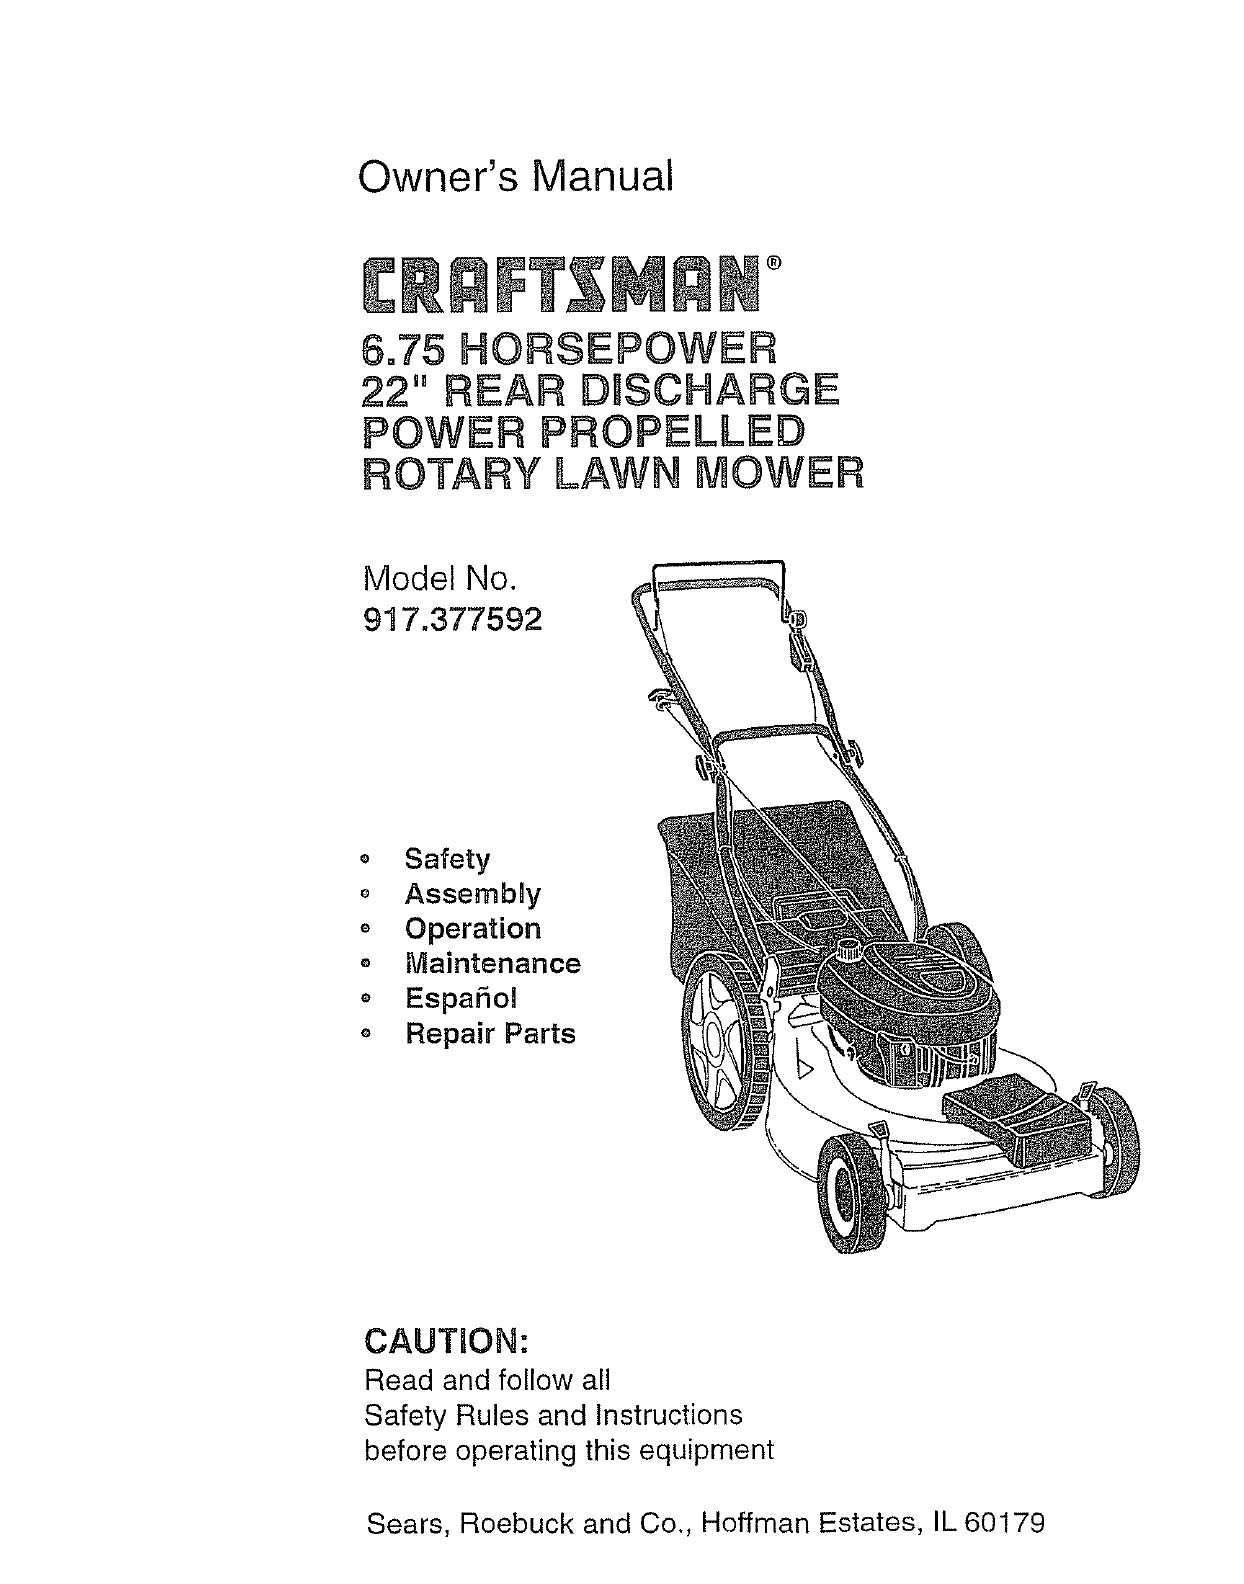 Craftsman Lawn Mower 917.377592 User Guide